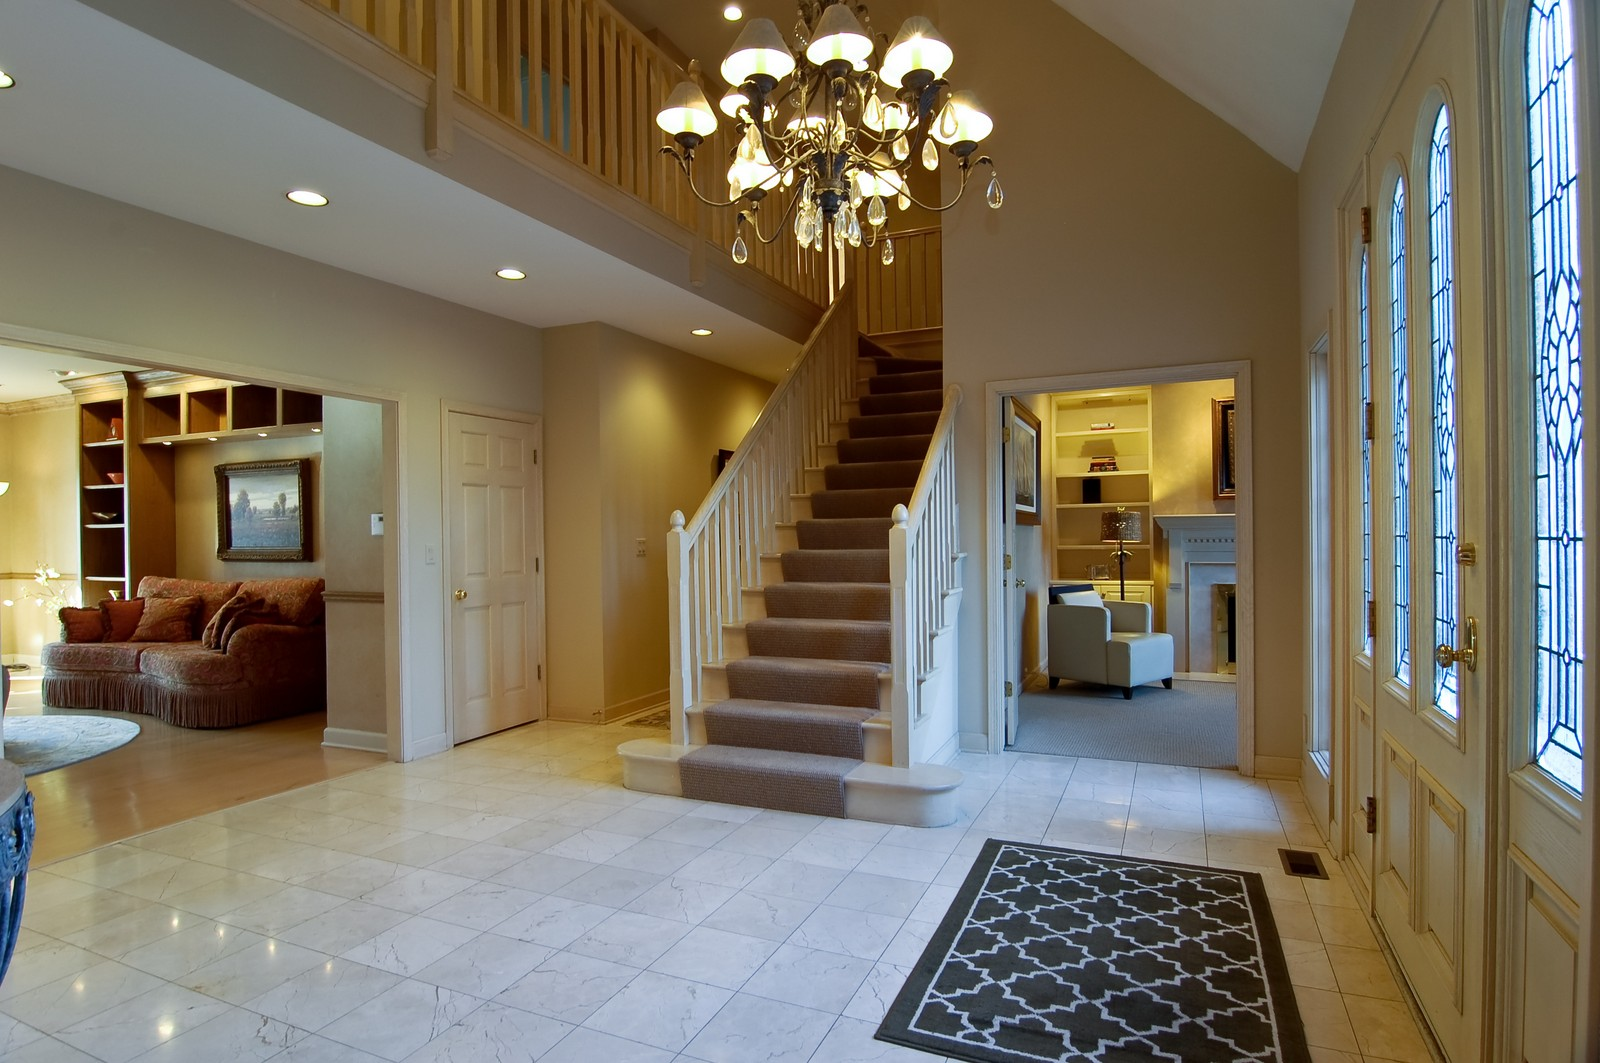 Real Estate Photography - 656 E 6th St, Hinsdale, IL, 60521 - Foyer